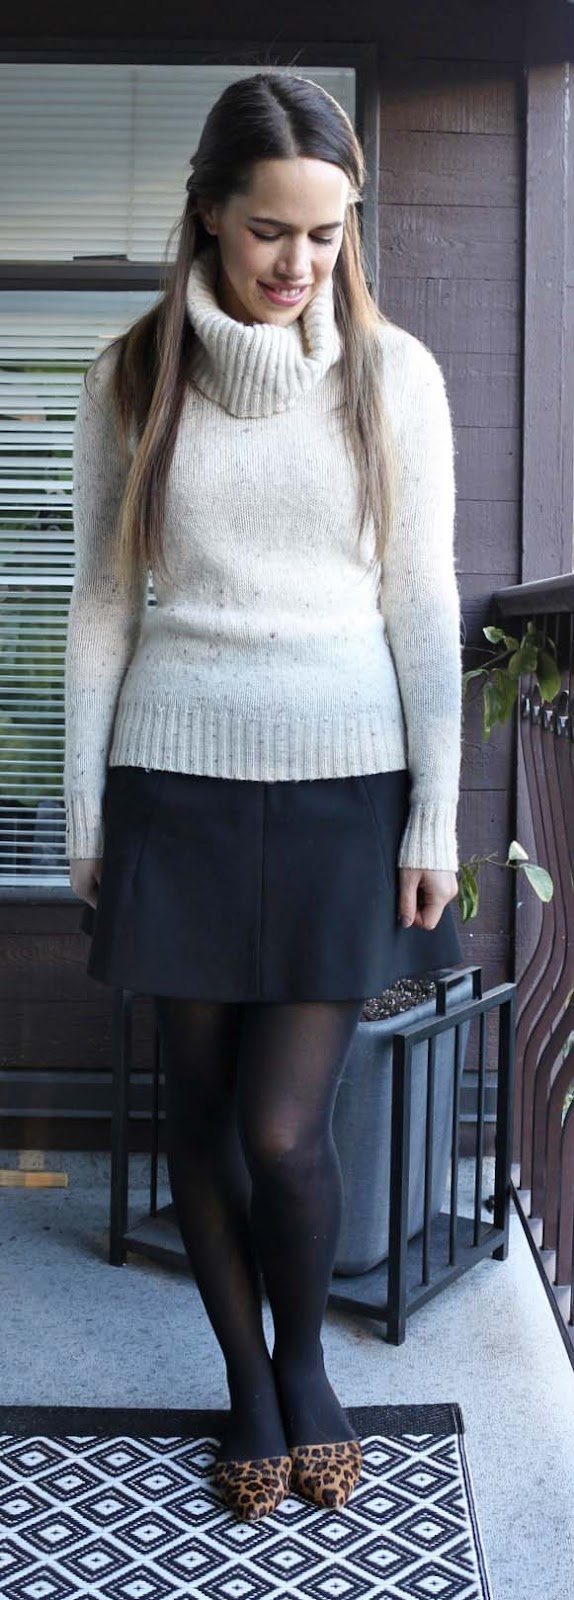 Jules in Flats - Cream Turtleneck Sweater, Black J.Crew Skater Skirt